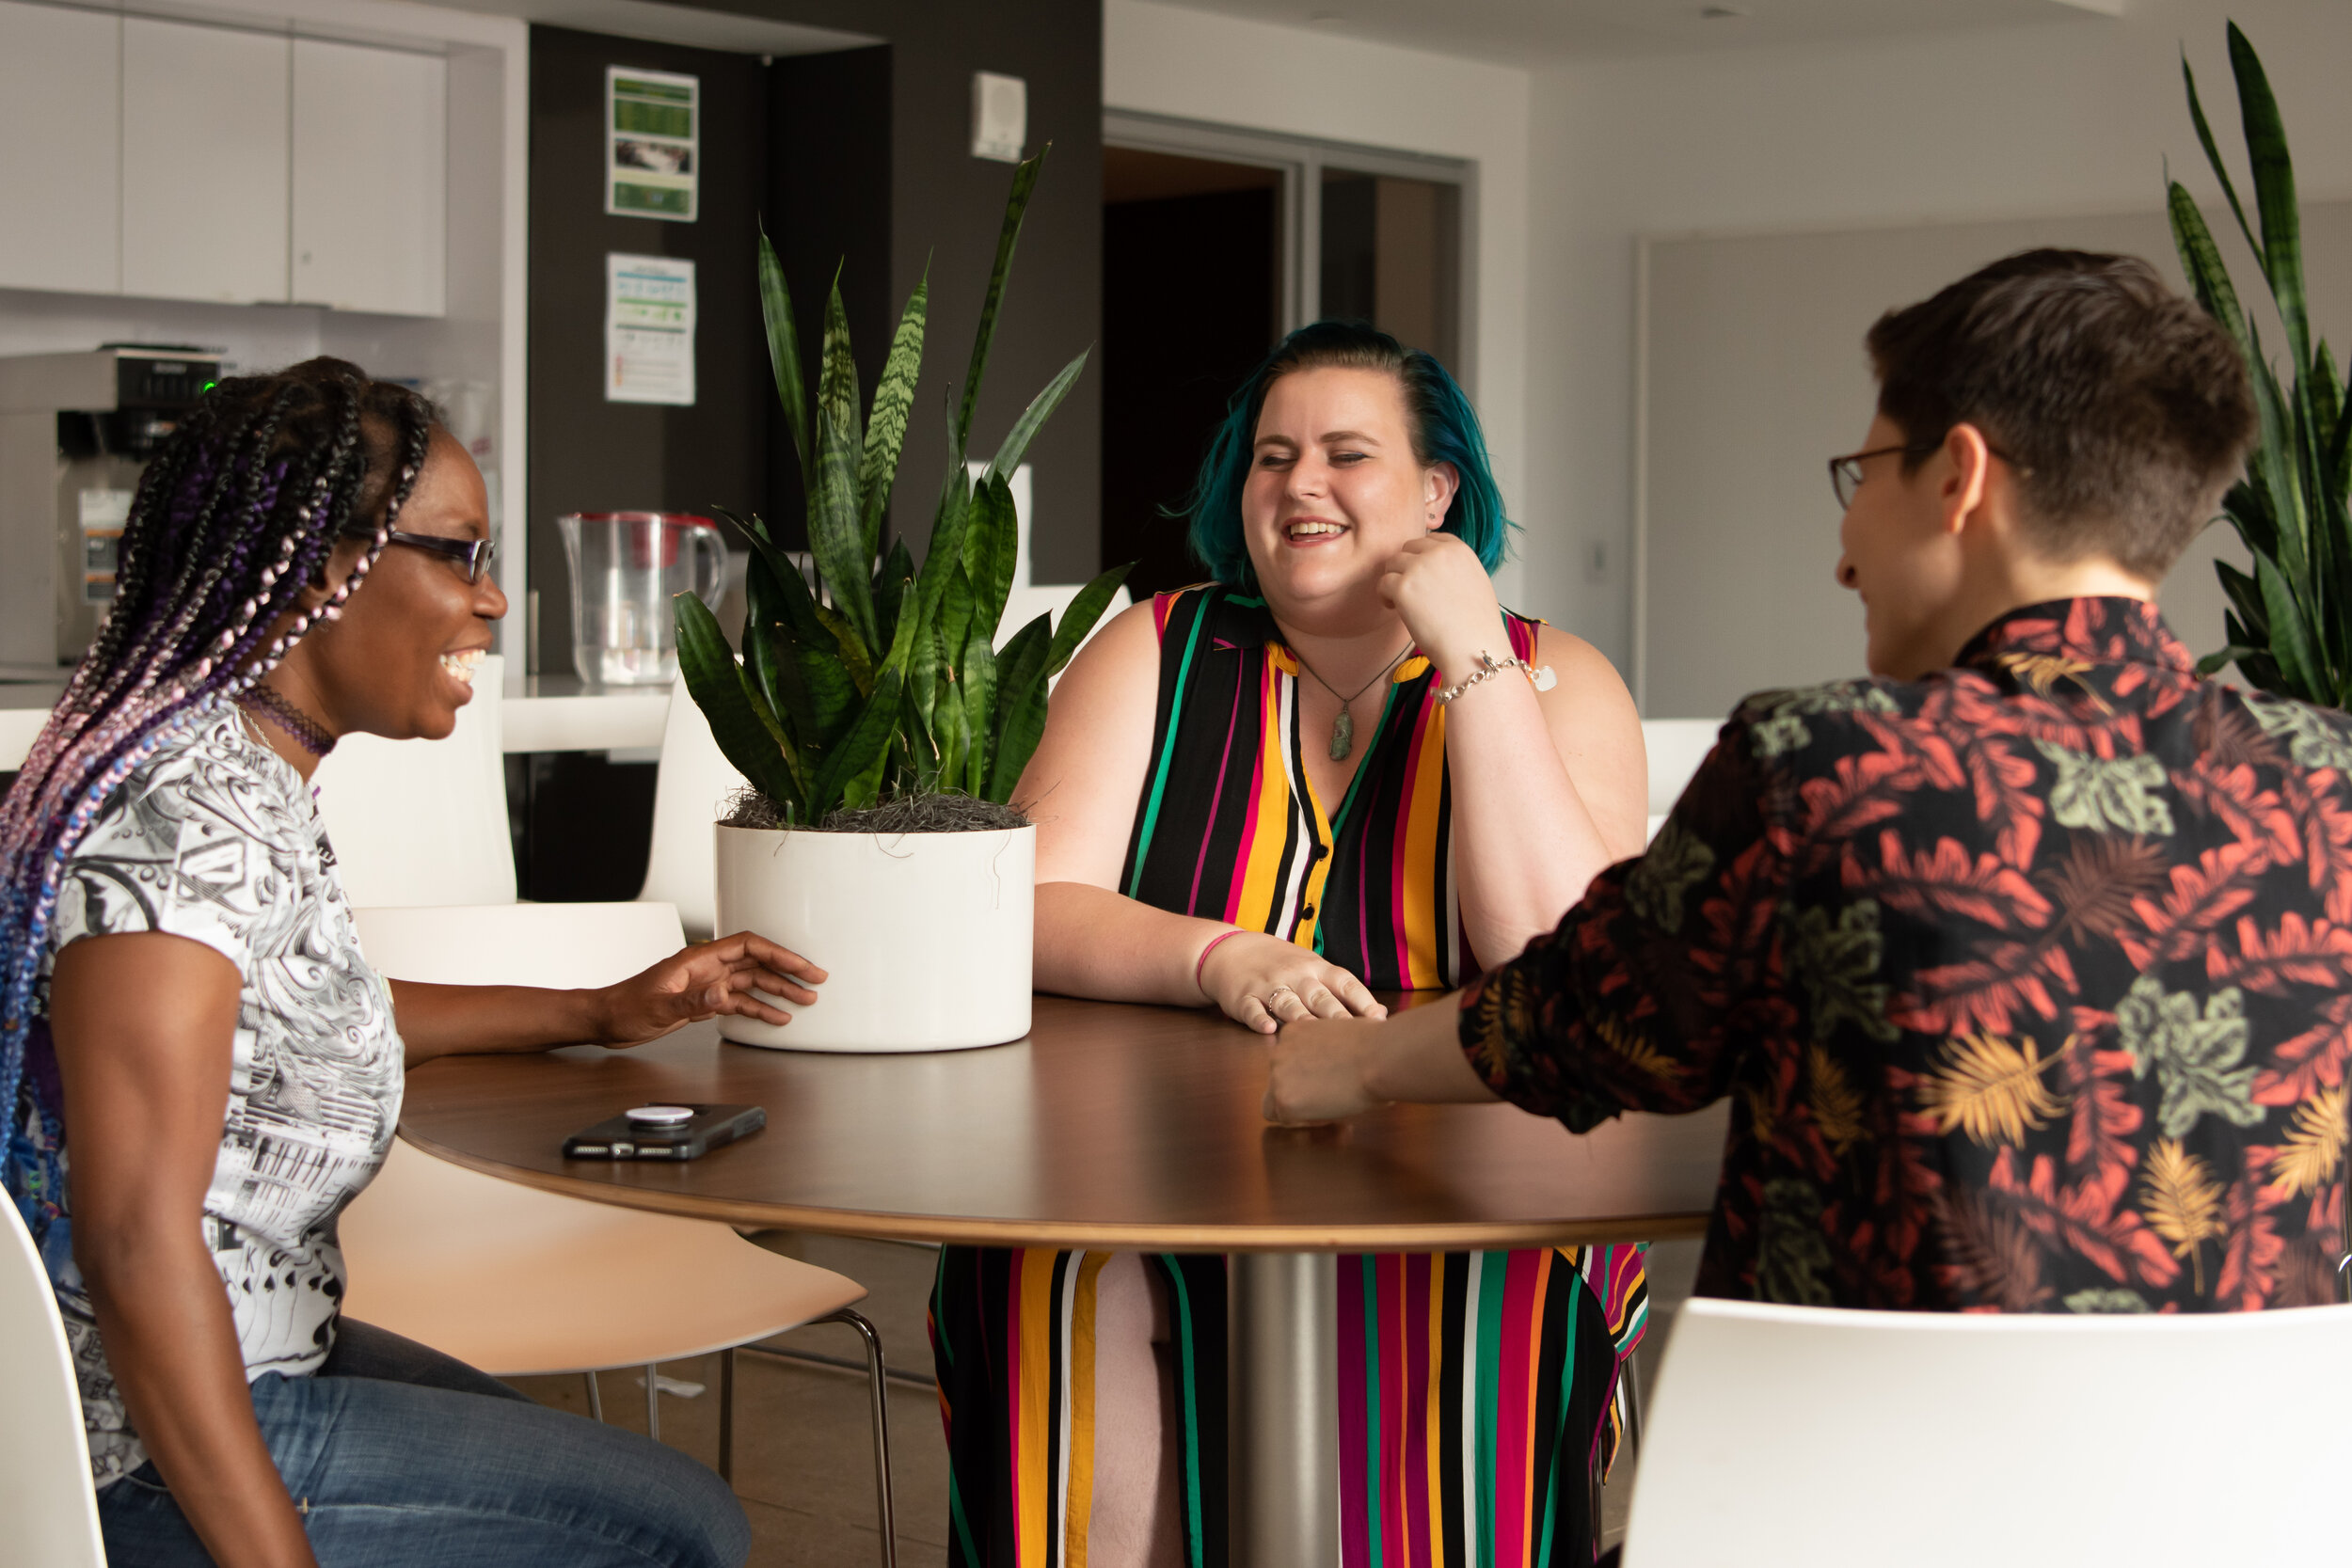 A group of two white people and one Black person sit laughing around a table. There is a plant and a phone on the table.